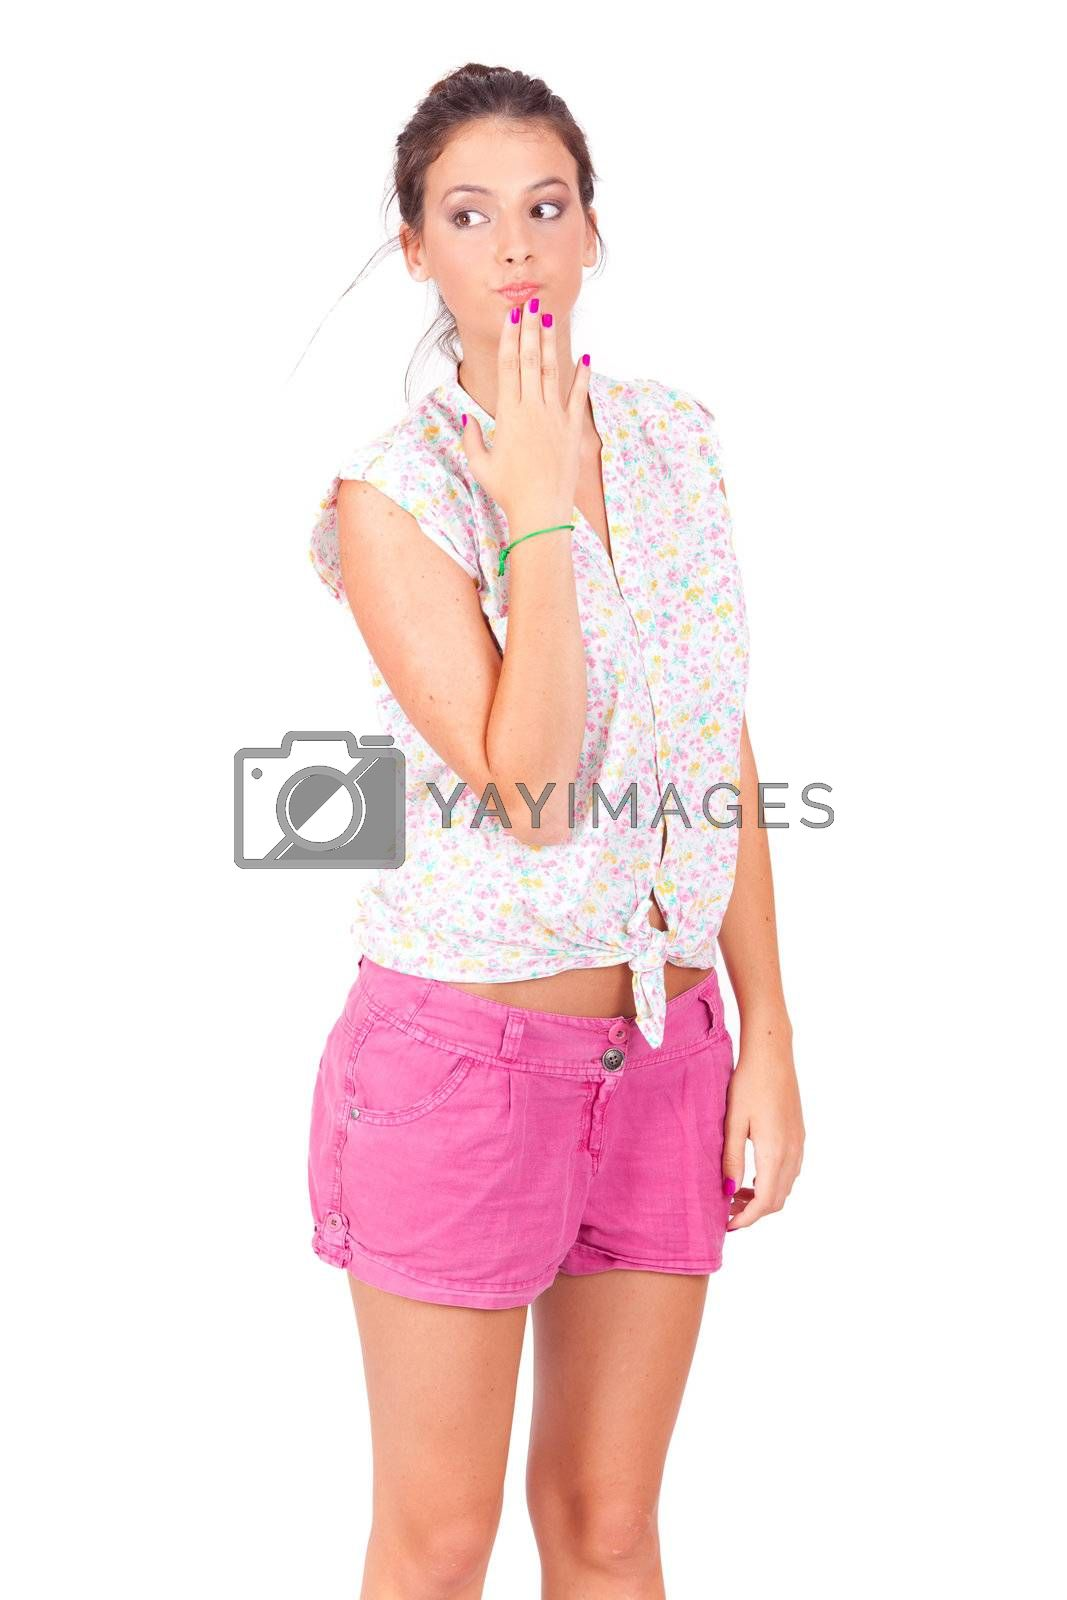 young beautiful women surprising on white background